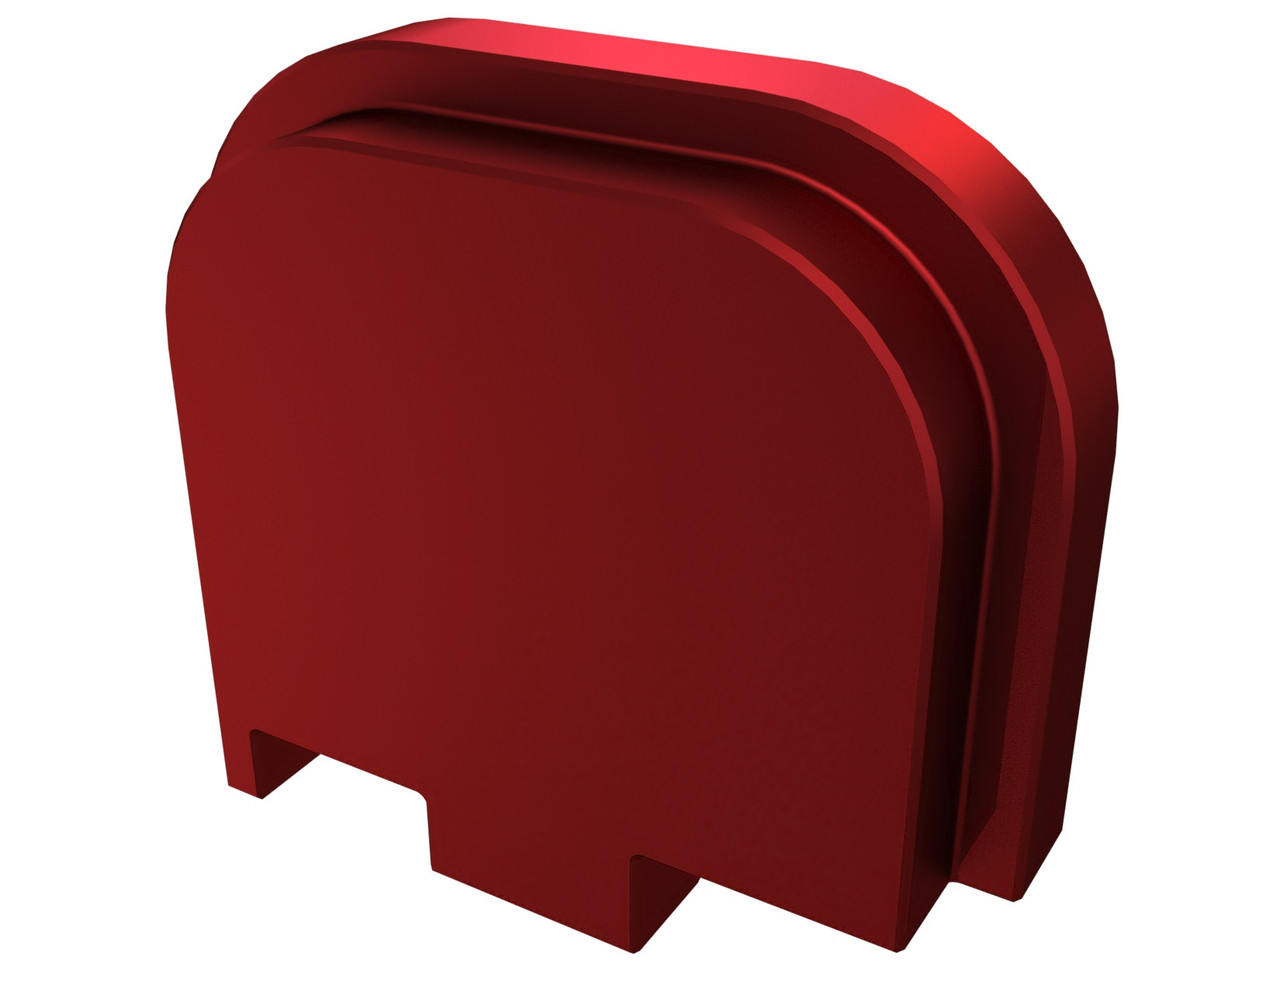 Rowe Tactical Glock Rear Slide Cover Plate G43 G43x G48 - Red